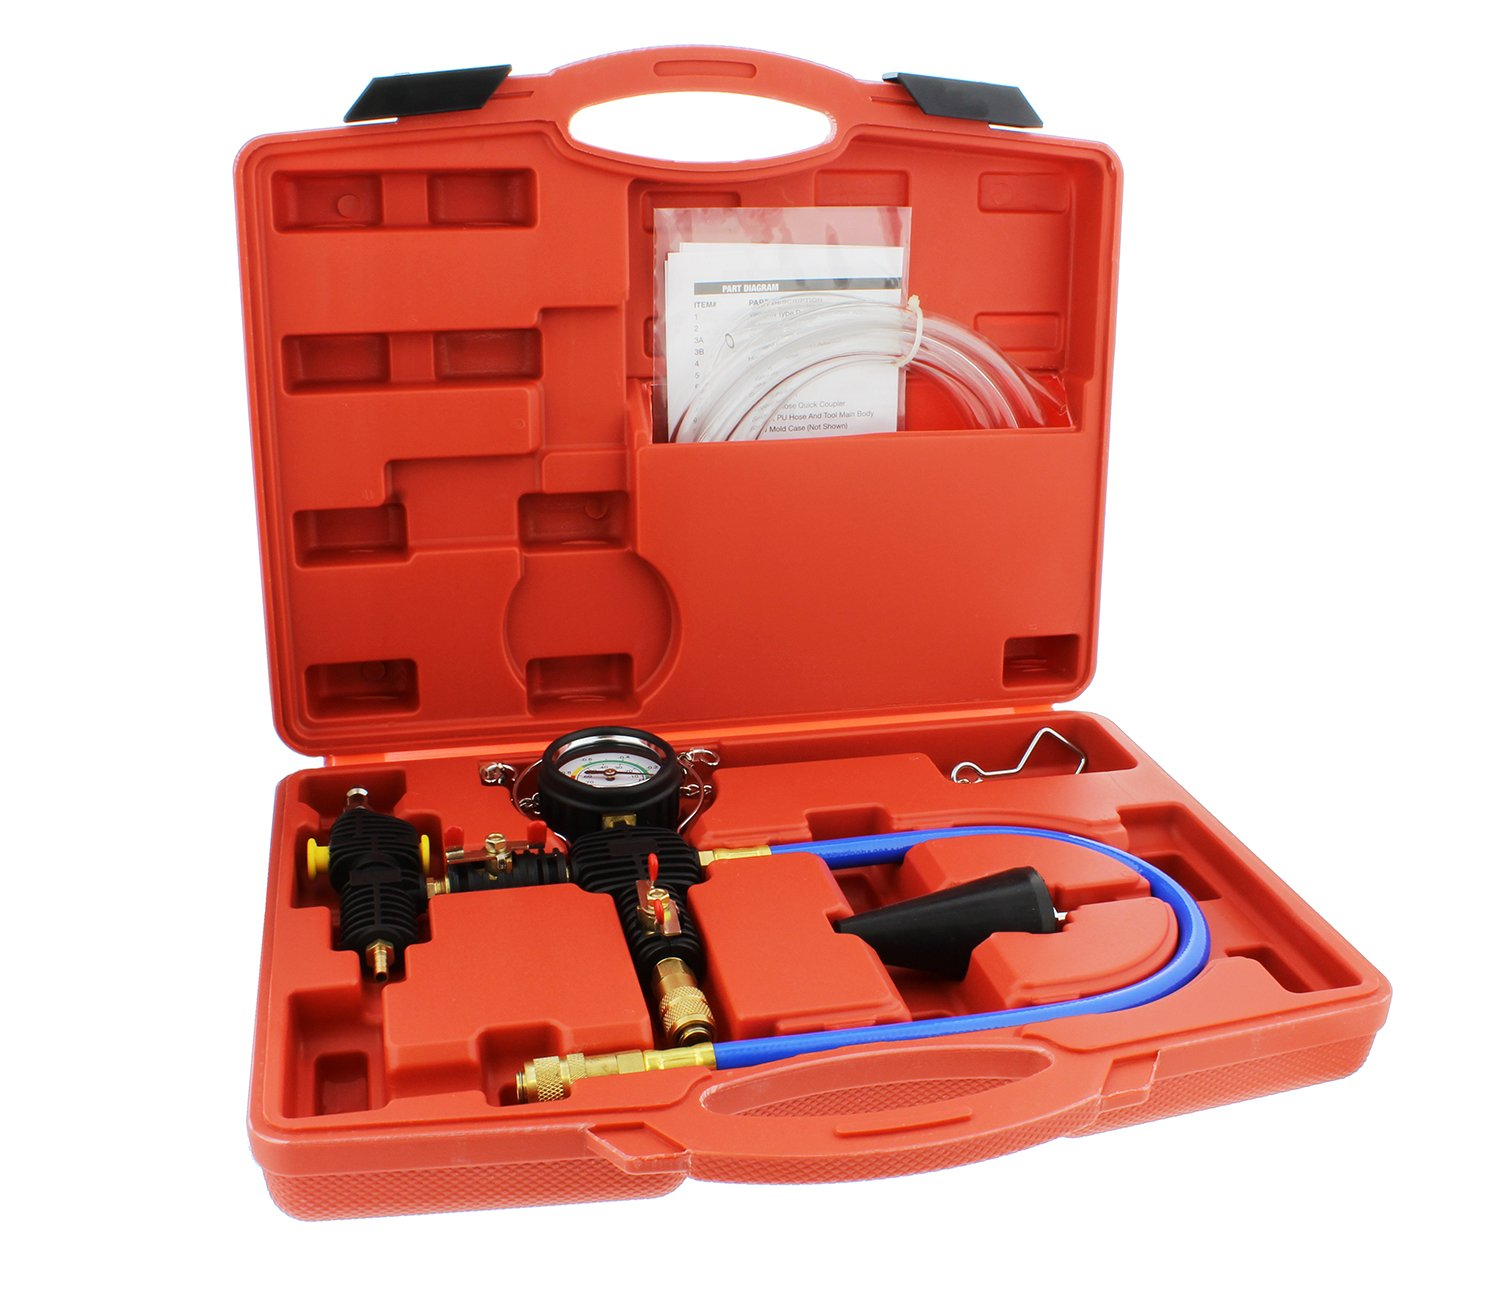 ABN Cooling System Vacuum Purge and Refill Kit with Instructions and Carrying Case – Car, SUV, Van, Light Truck Radiator